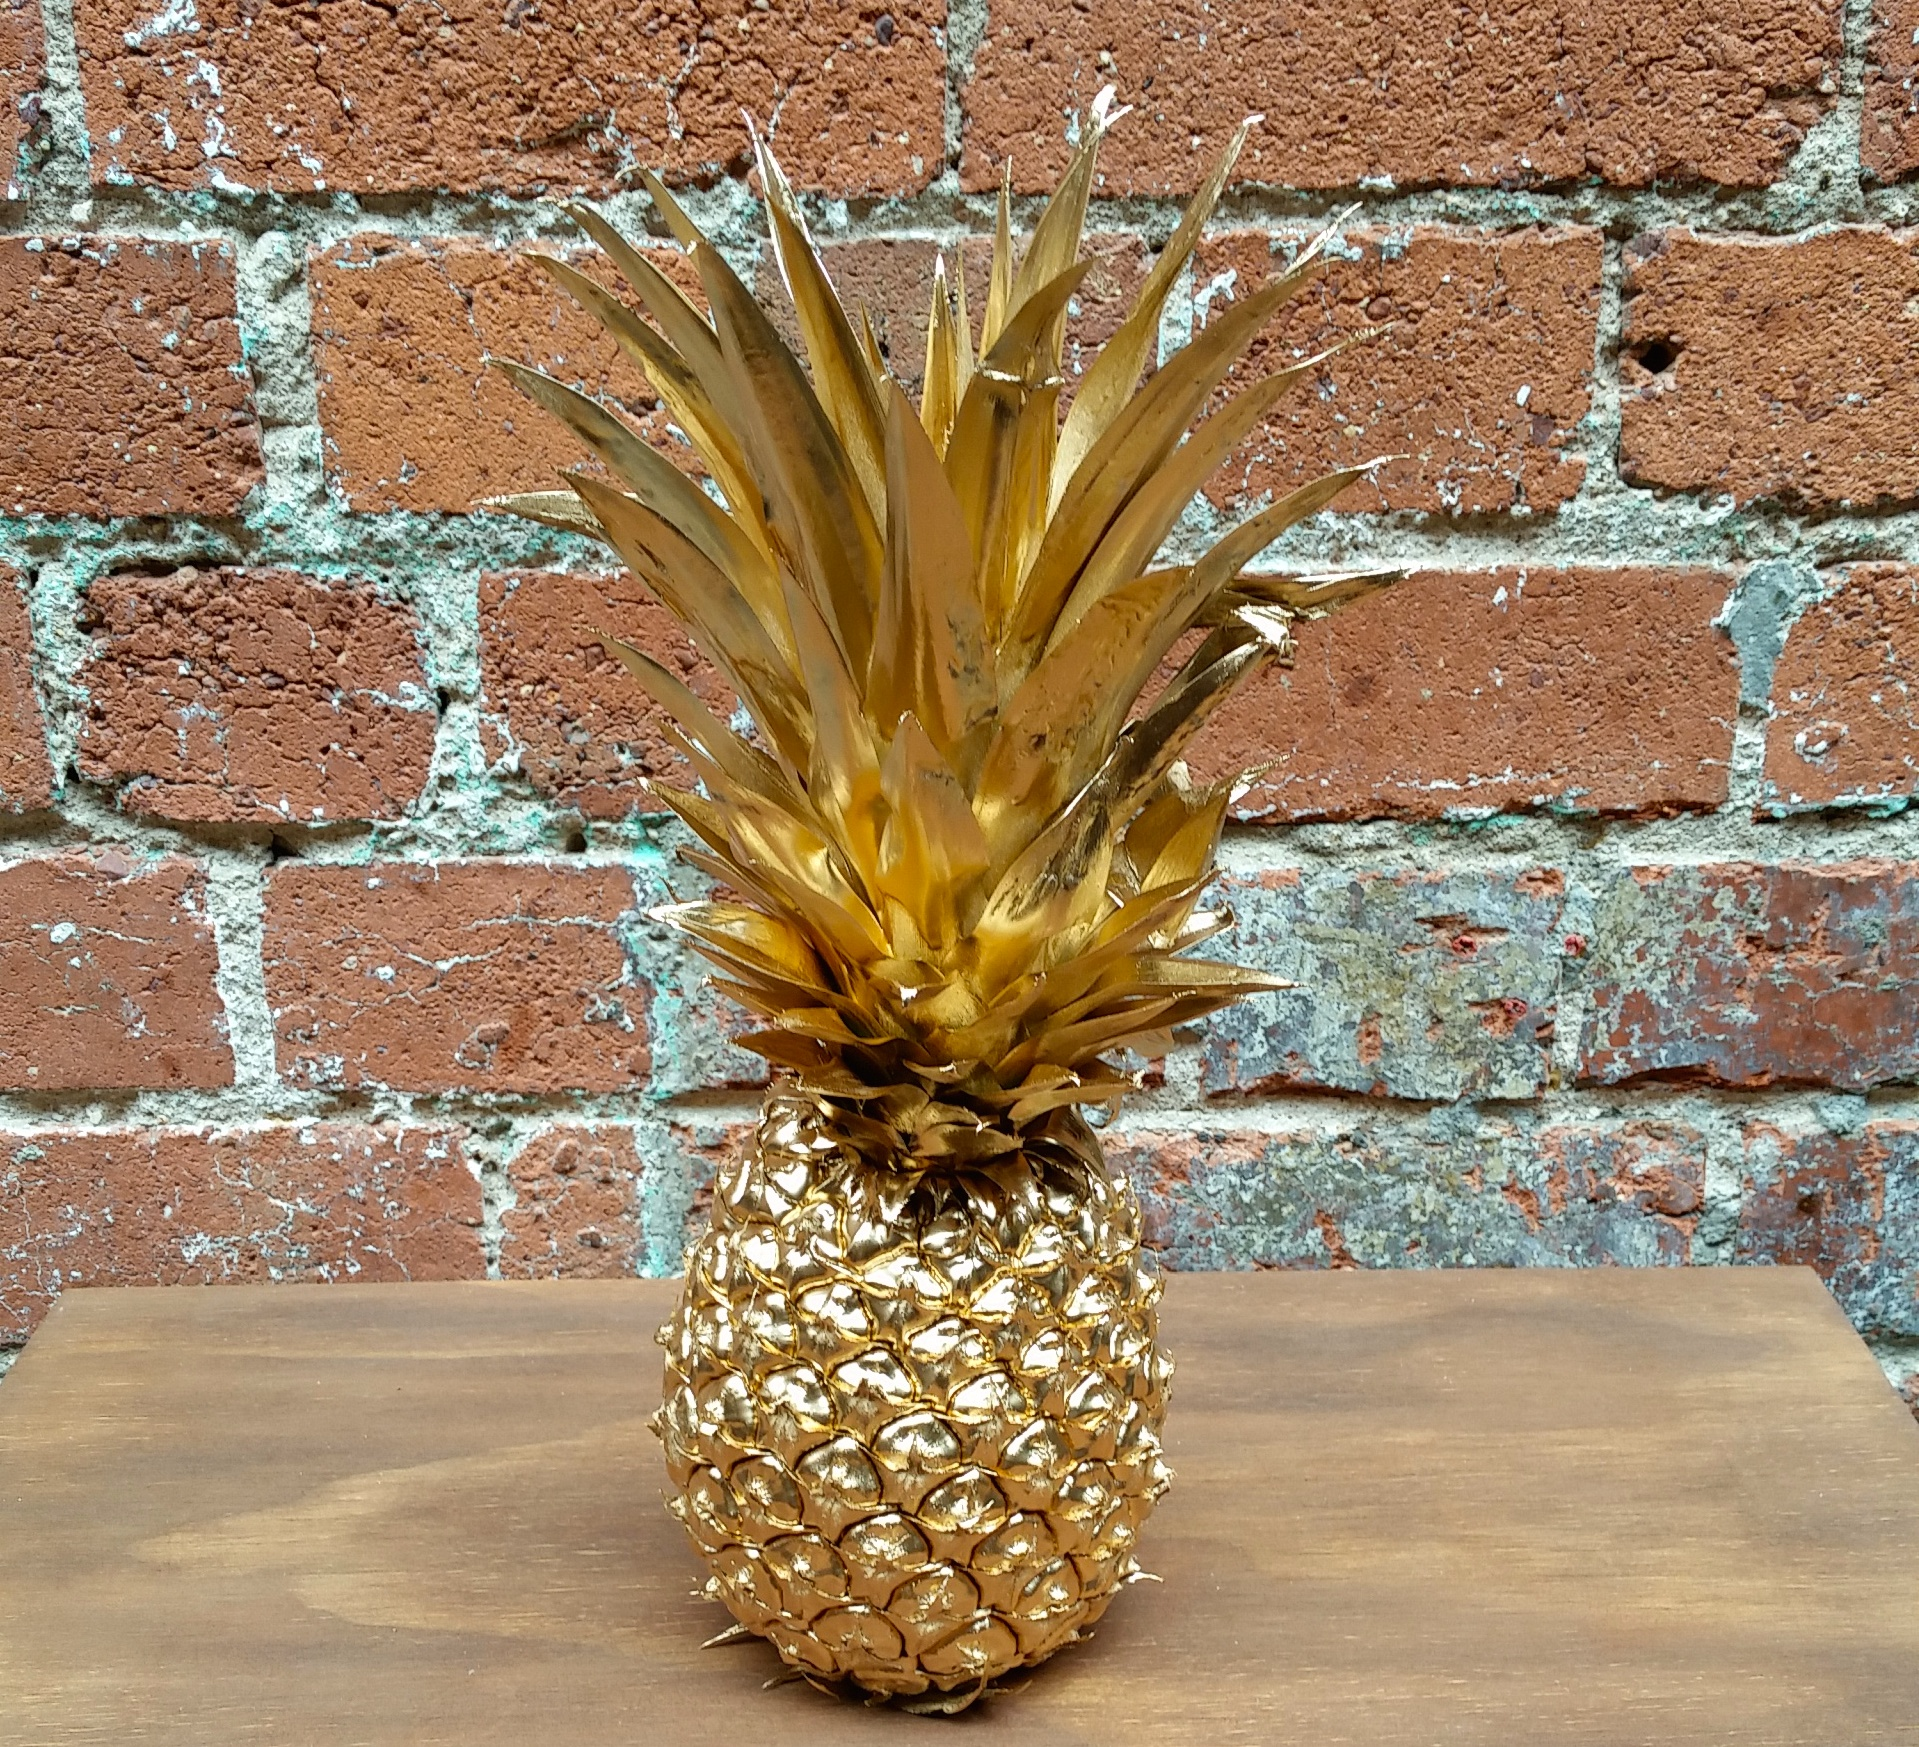 What a glorious golden pineapple!